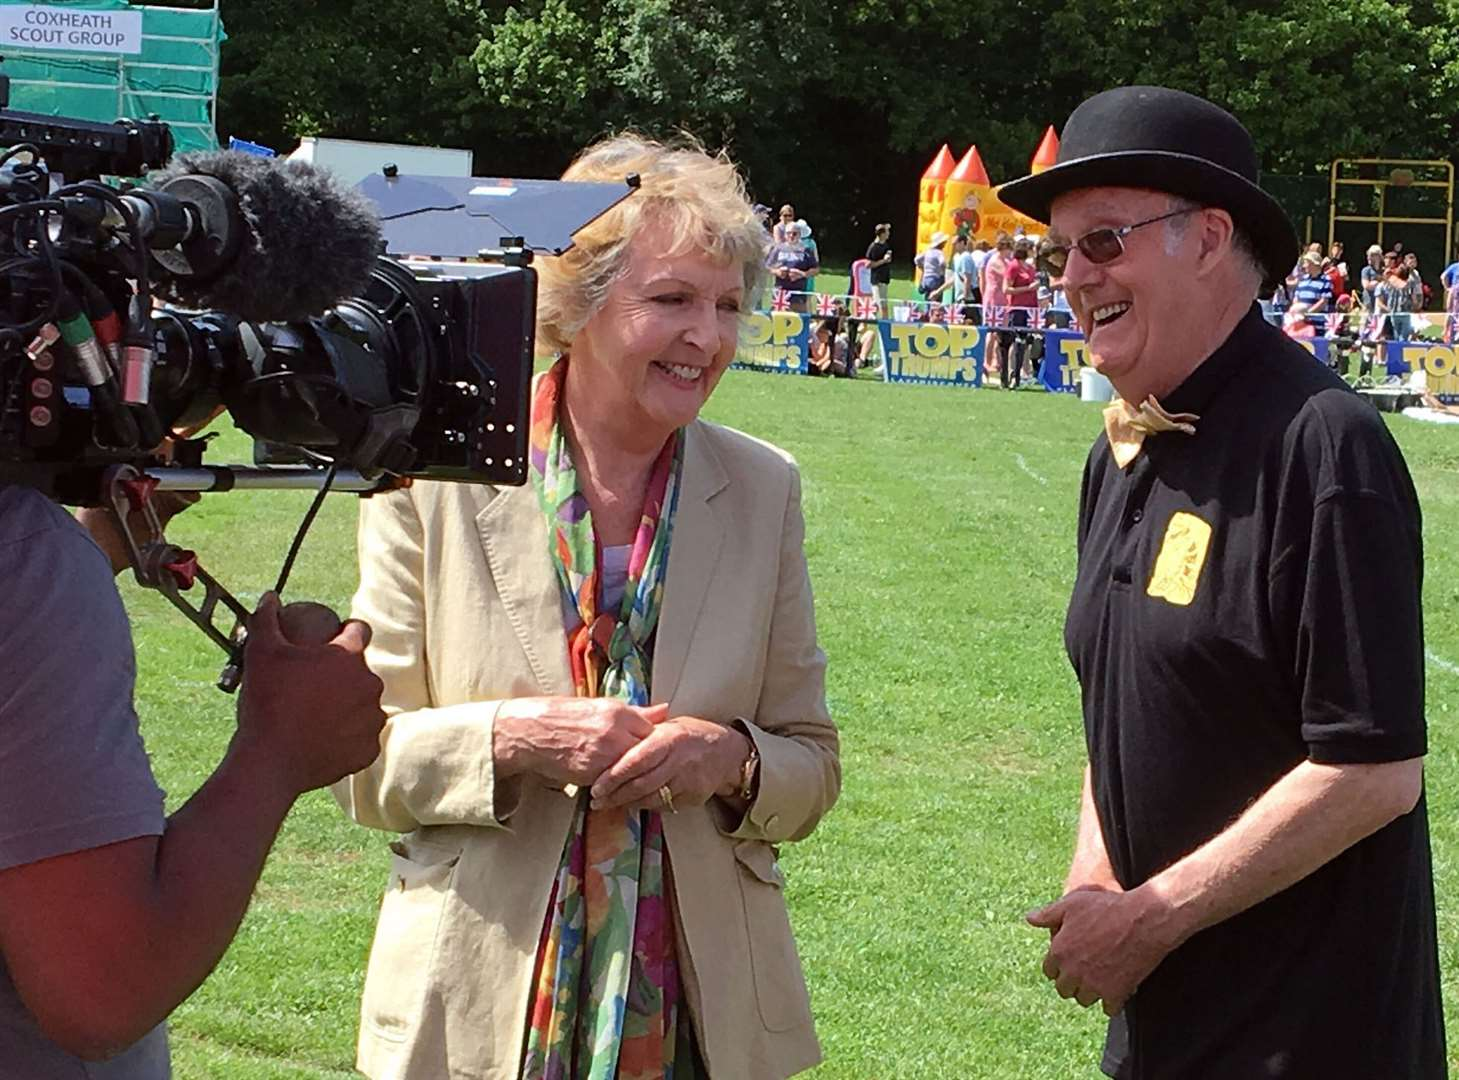 Penelope Keith interview Mike FitzGerald at the Coxheath Custard Pie Championships